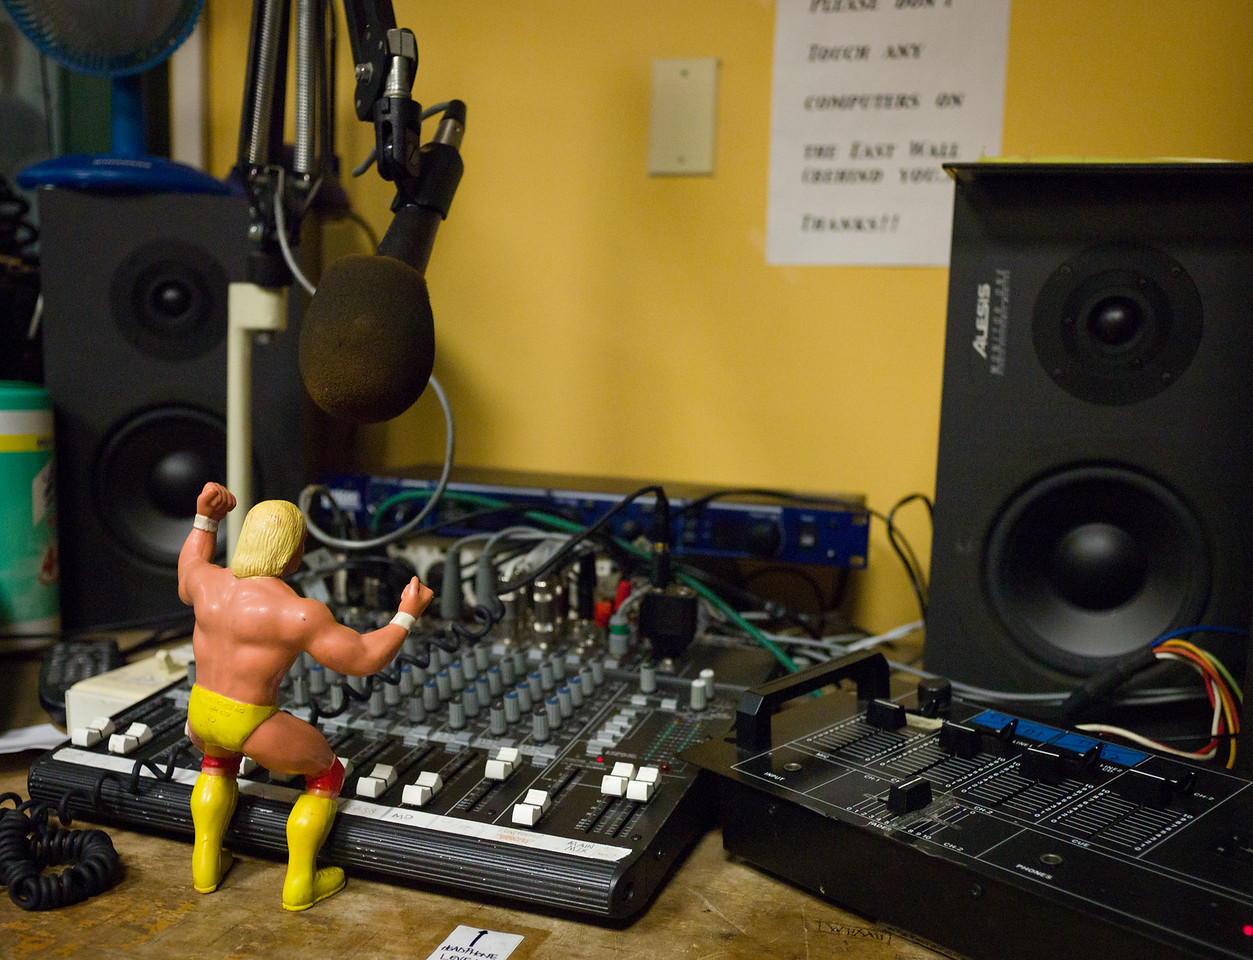 Mr. Hogan does his radio show from Studio C, the littlest studio at WFMU.